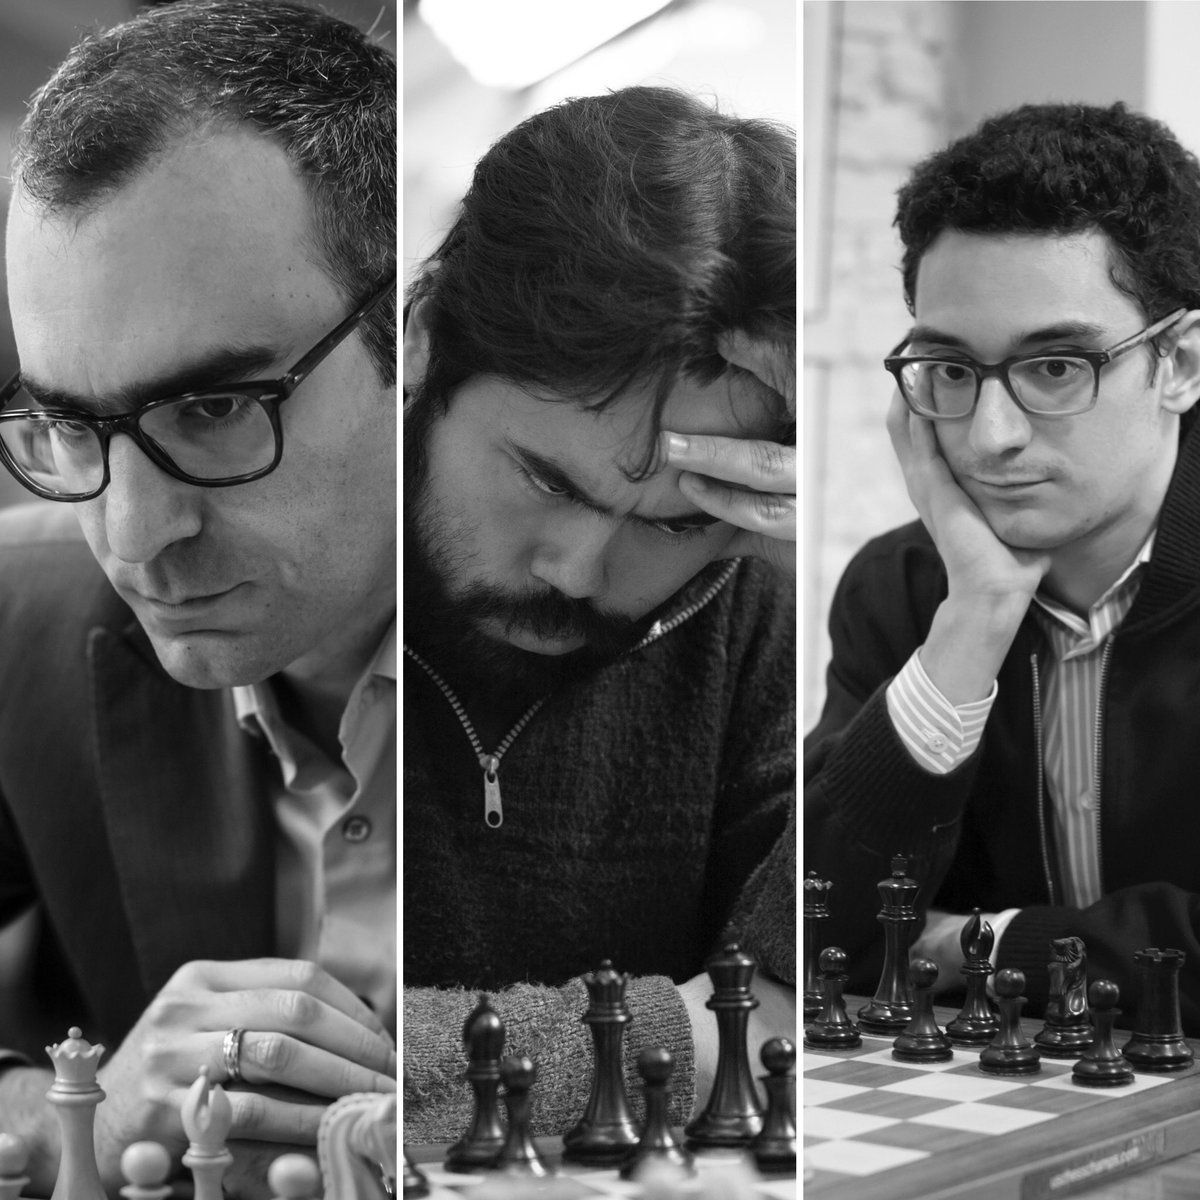 The final duel between Leinier, Nakamura and Caruana left the Japanese as the winner. Photo: Saint Louis Chess Club.